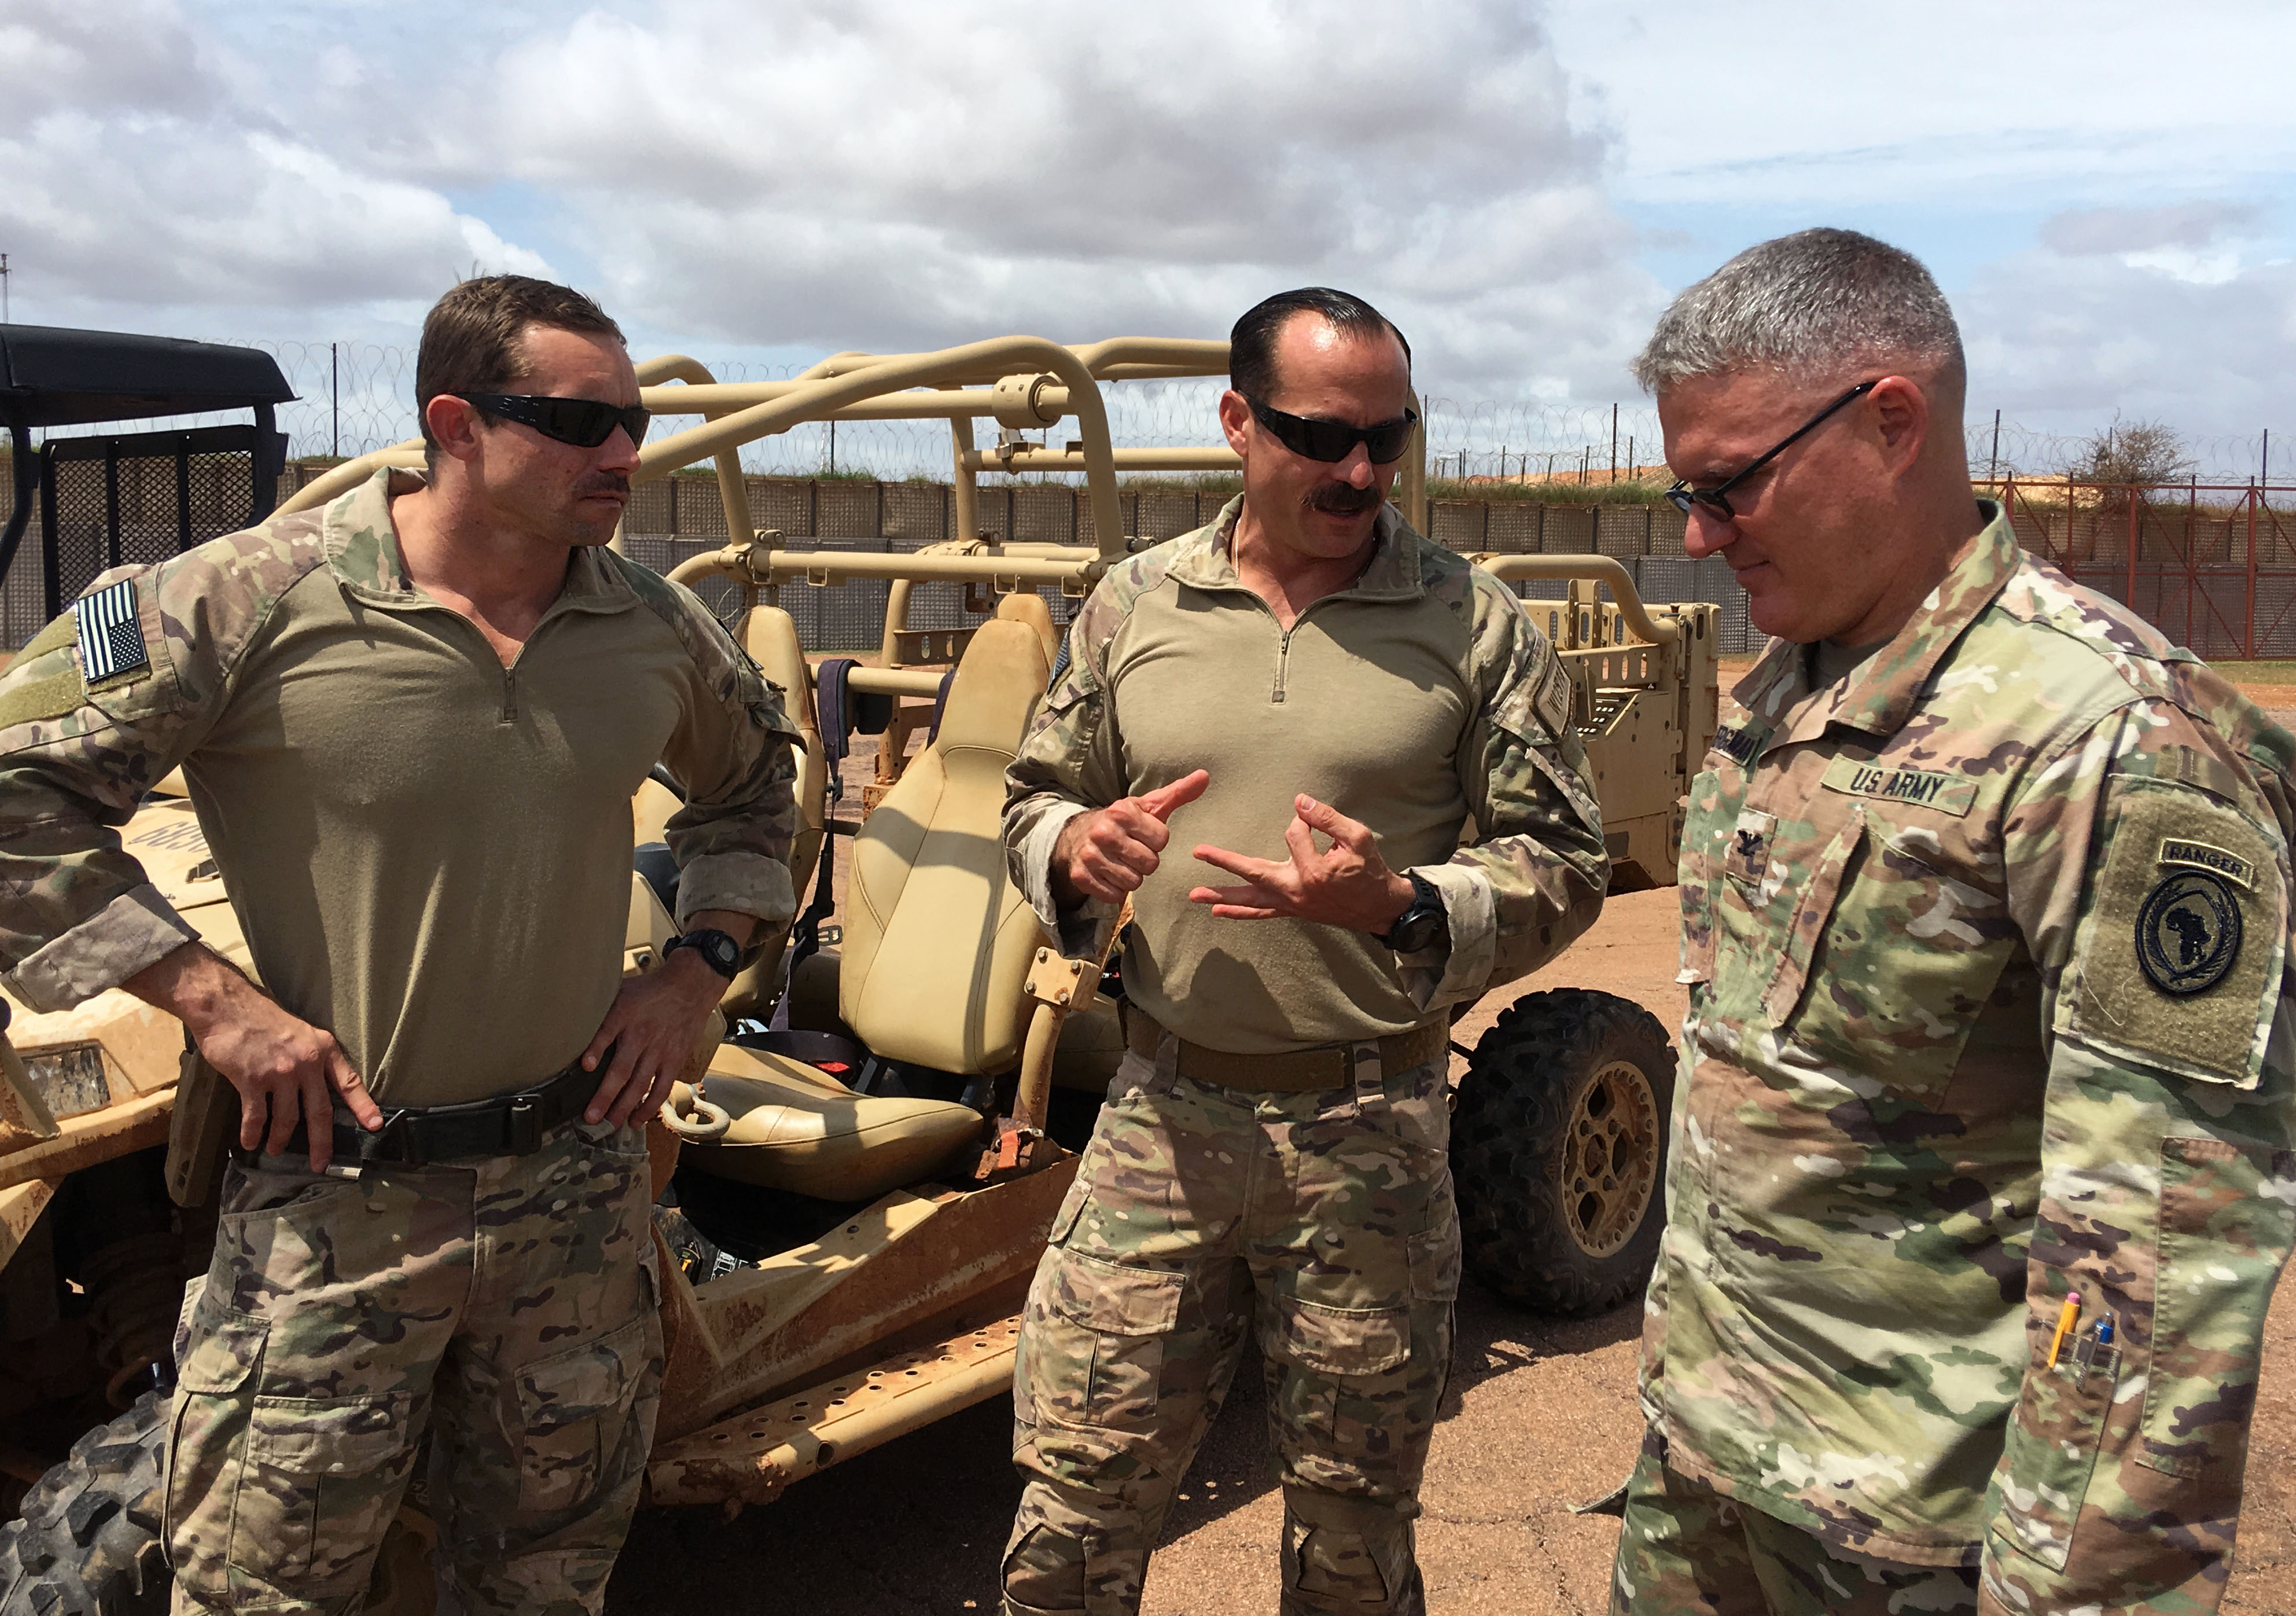 U.S. Army Col. Charles Bergman, lead integrator for U.S. Africa Command operations in Africa, receives a brief from U.S. personnel at a forward operating location in Somalia, June 11, 2019.  AFRICOM senior leaders visited the forward deployed unit to assess progress in enhancing Somali defense capabilities.